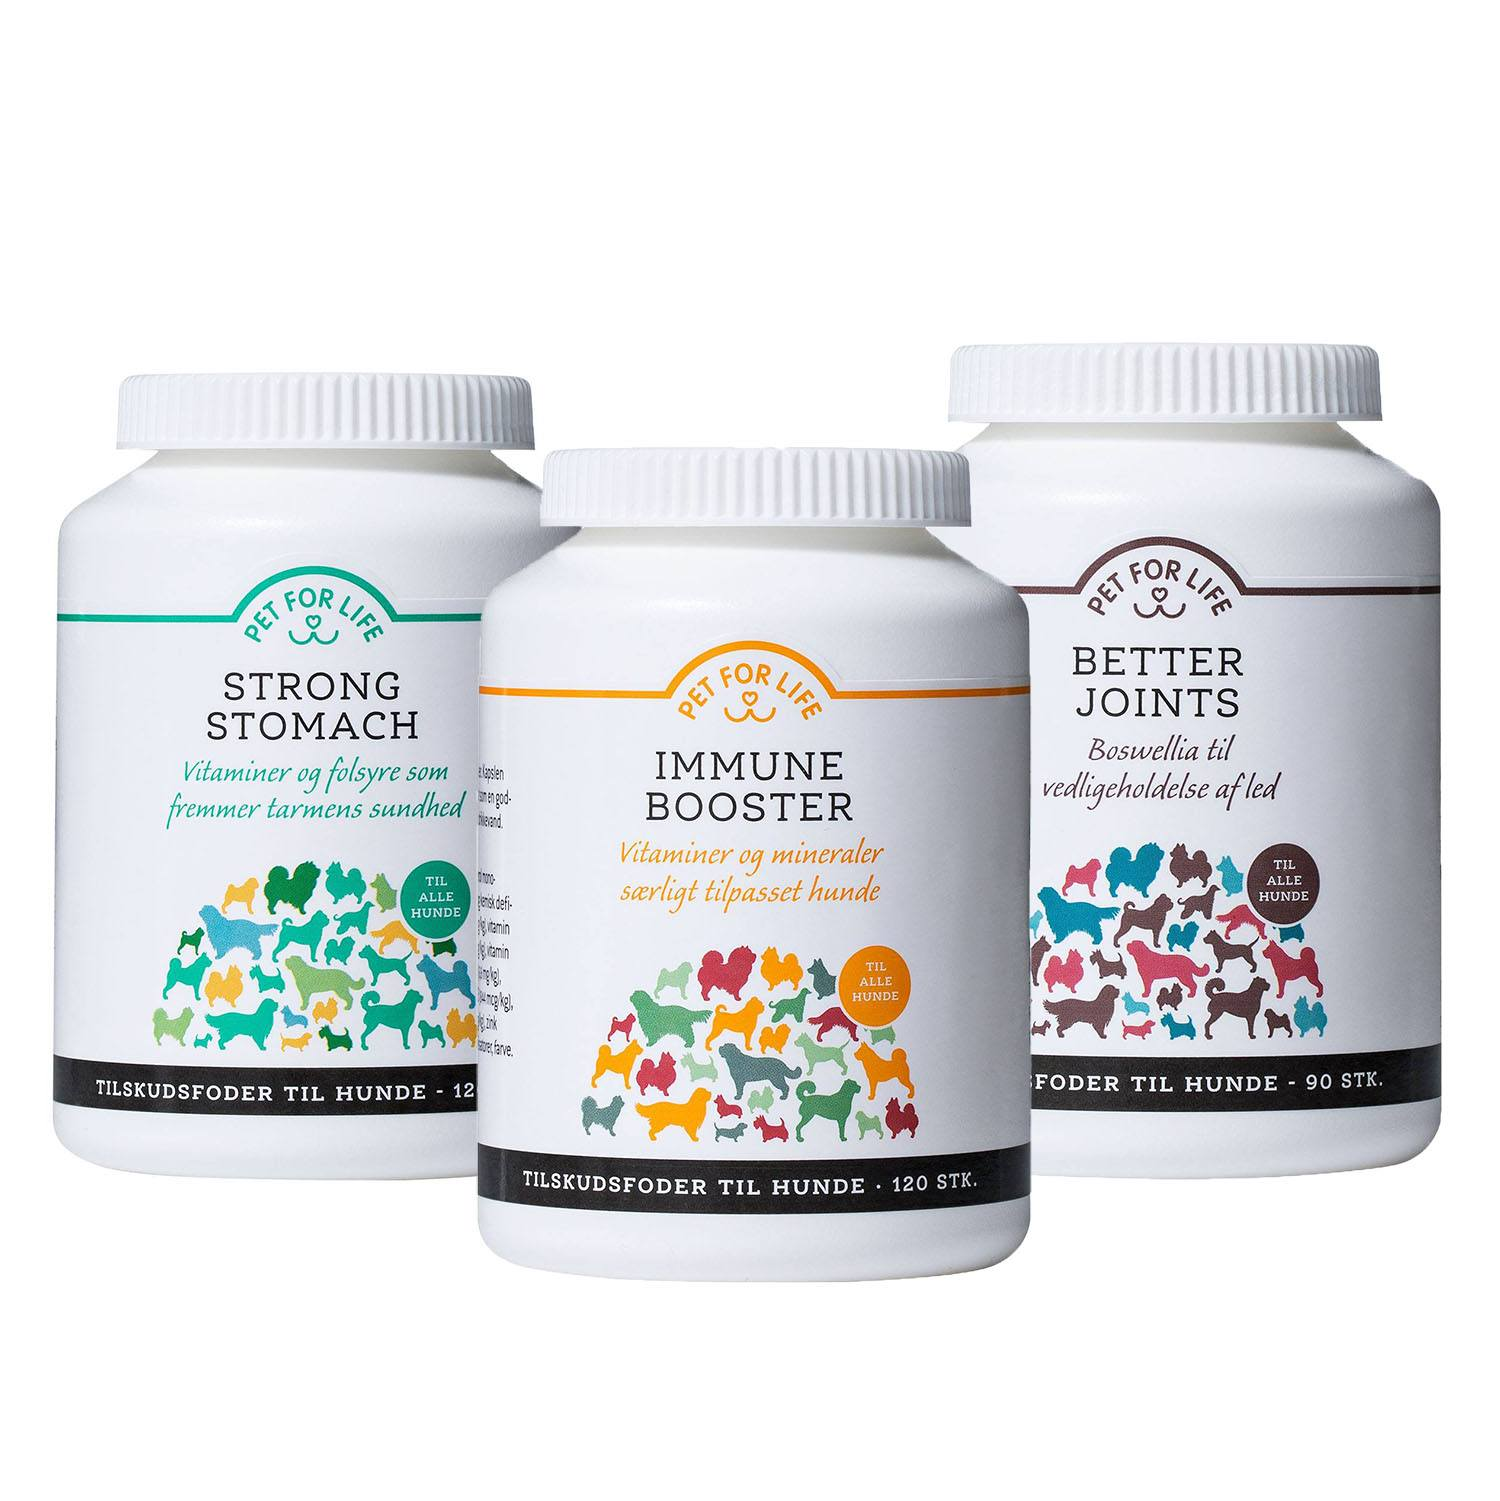 Pet for Life - Strong Stomach, Immune Booster & Better Joints